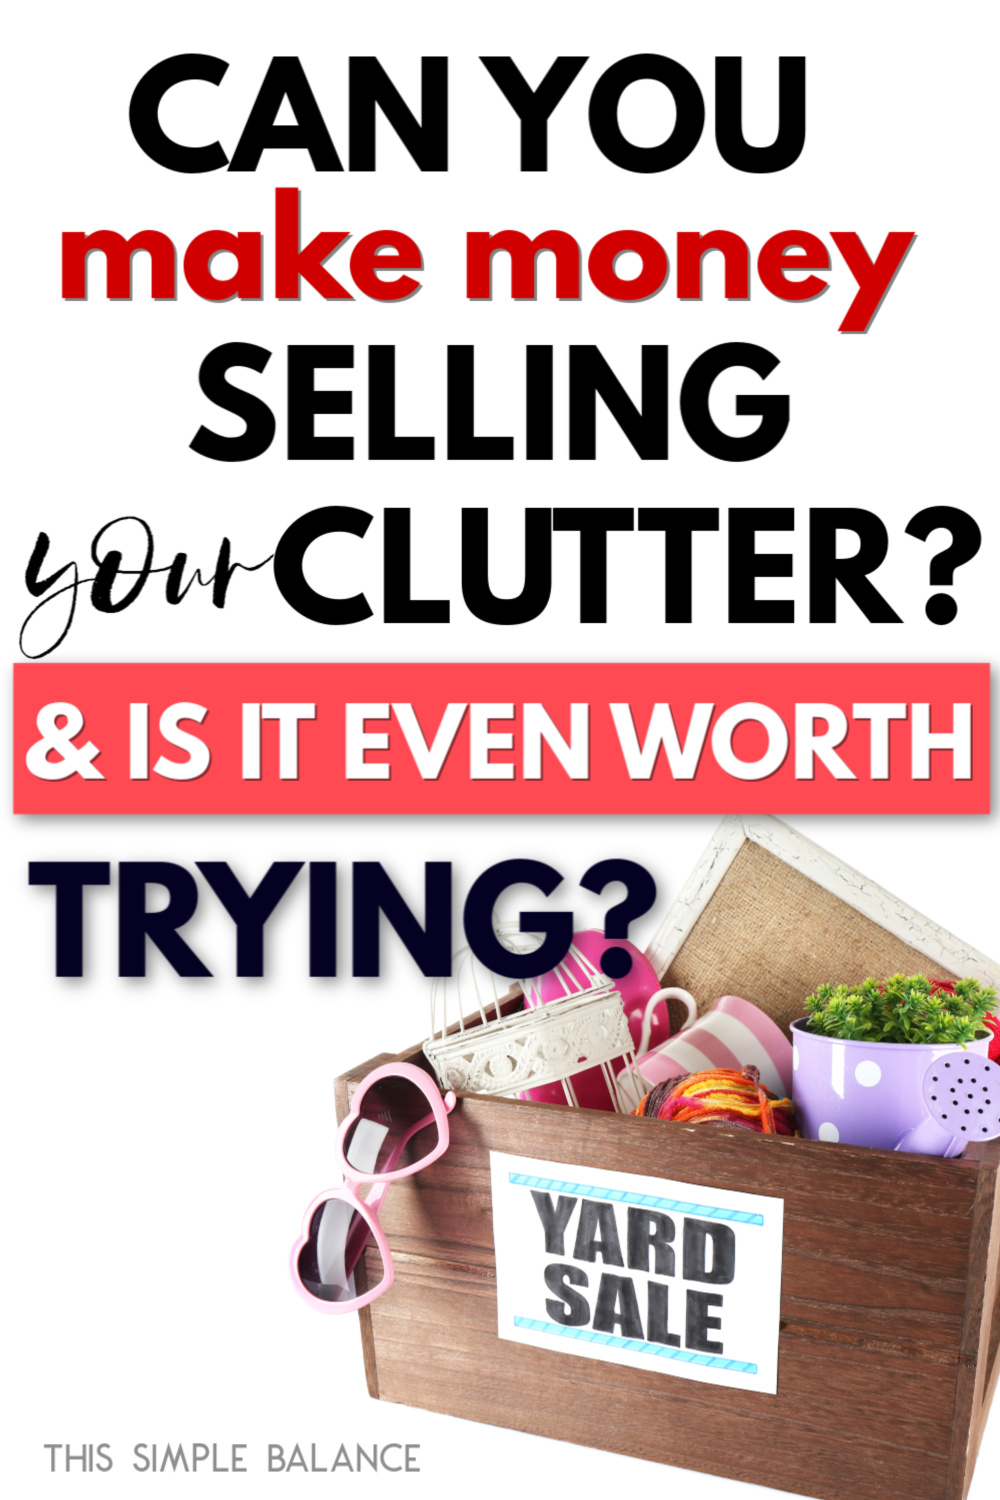 "yard sale box with clutter with text overlay ""Can you really make money selling clutter?"""